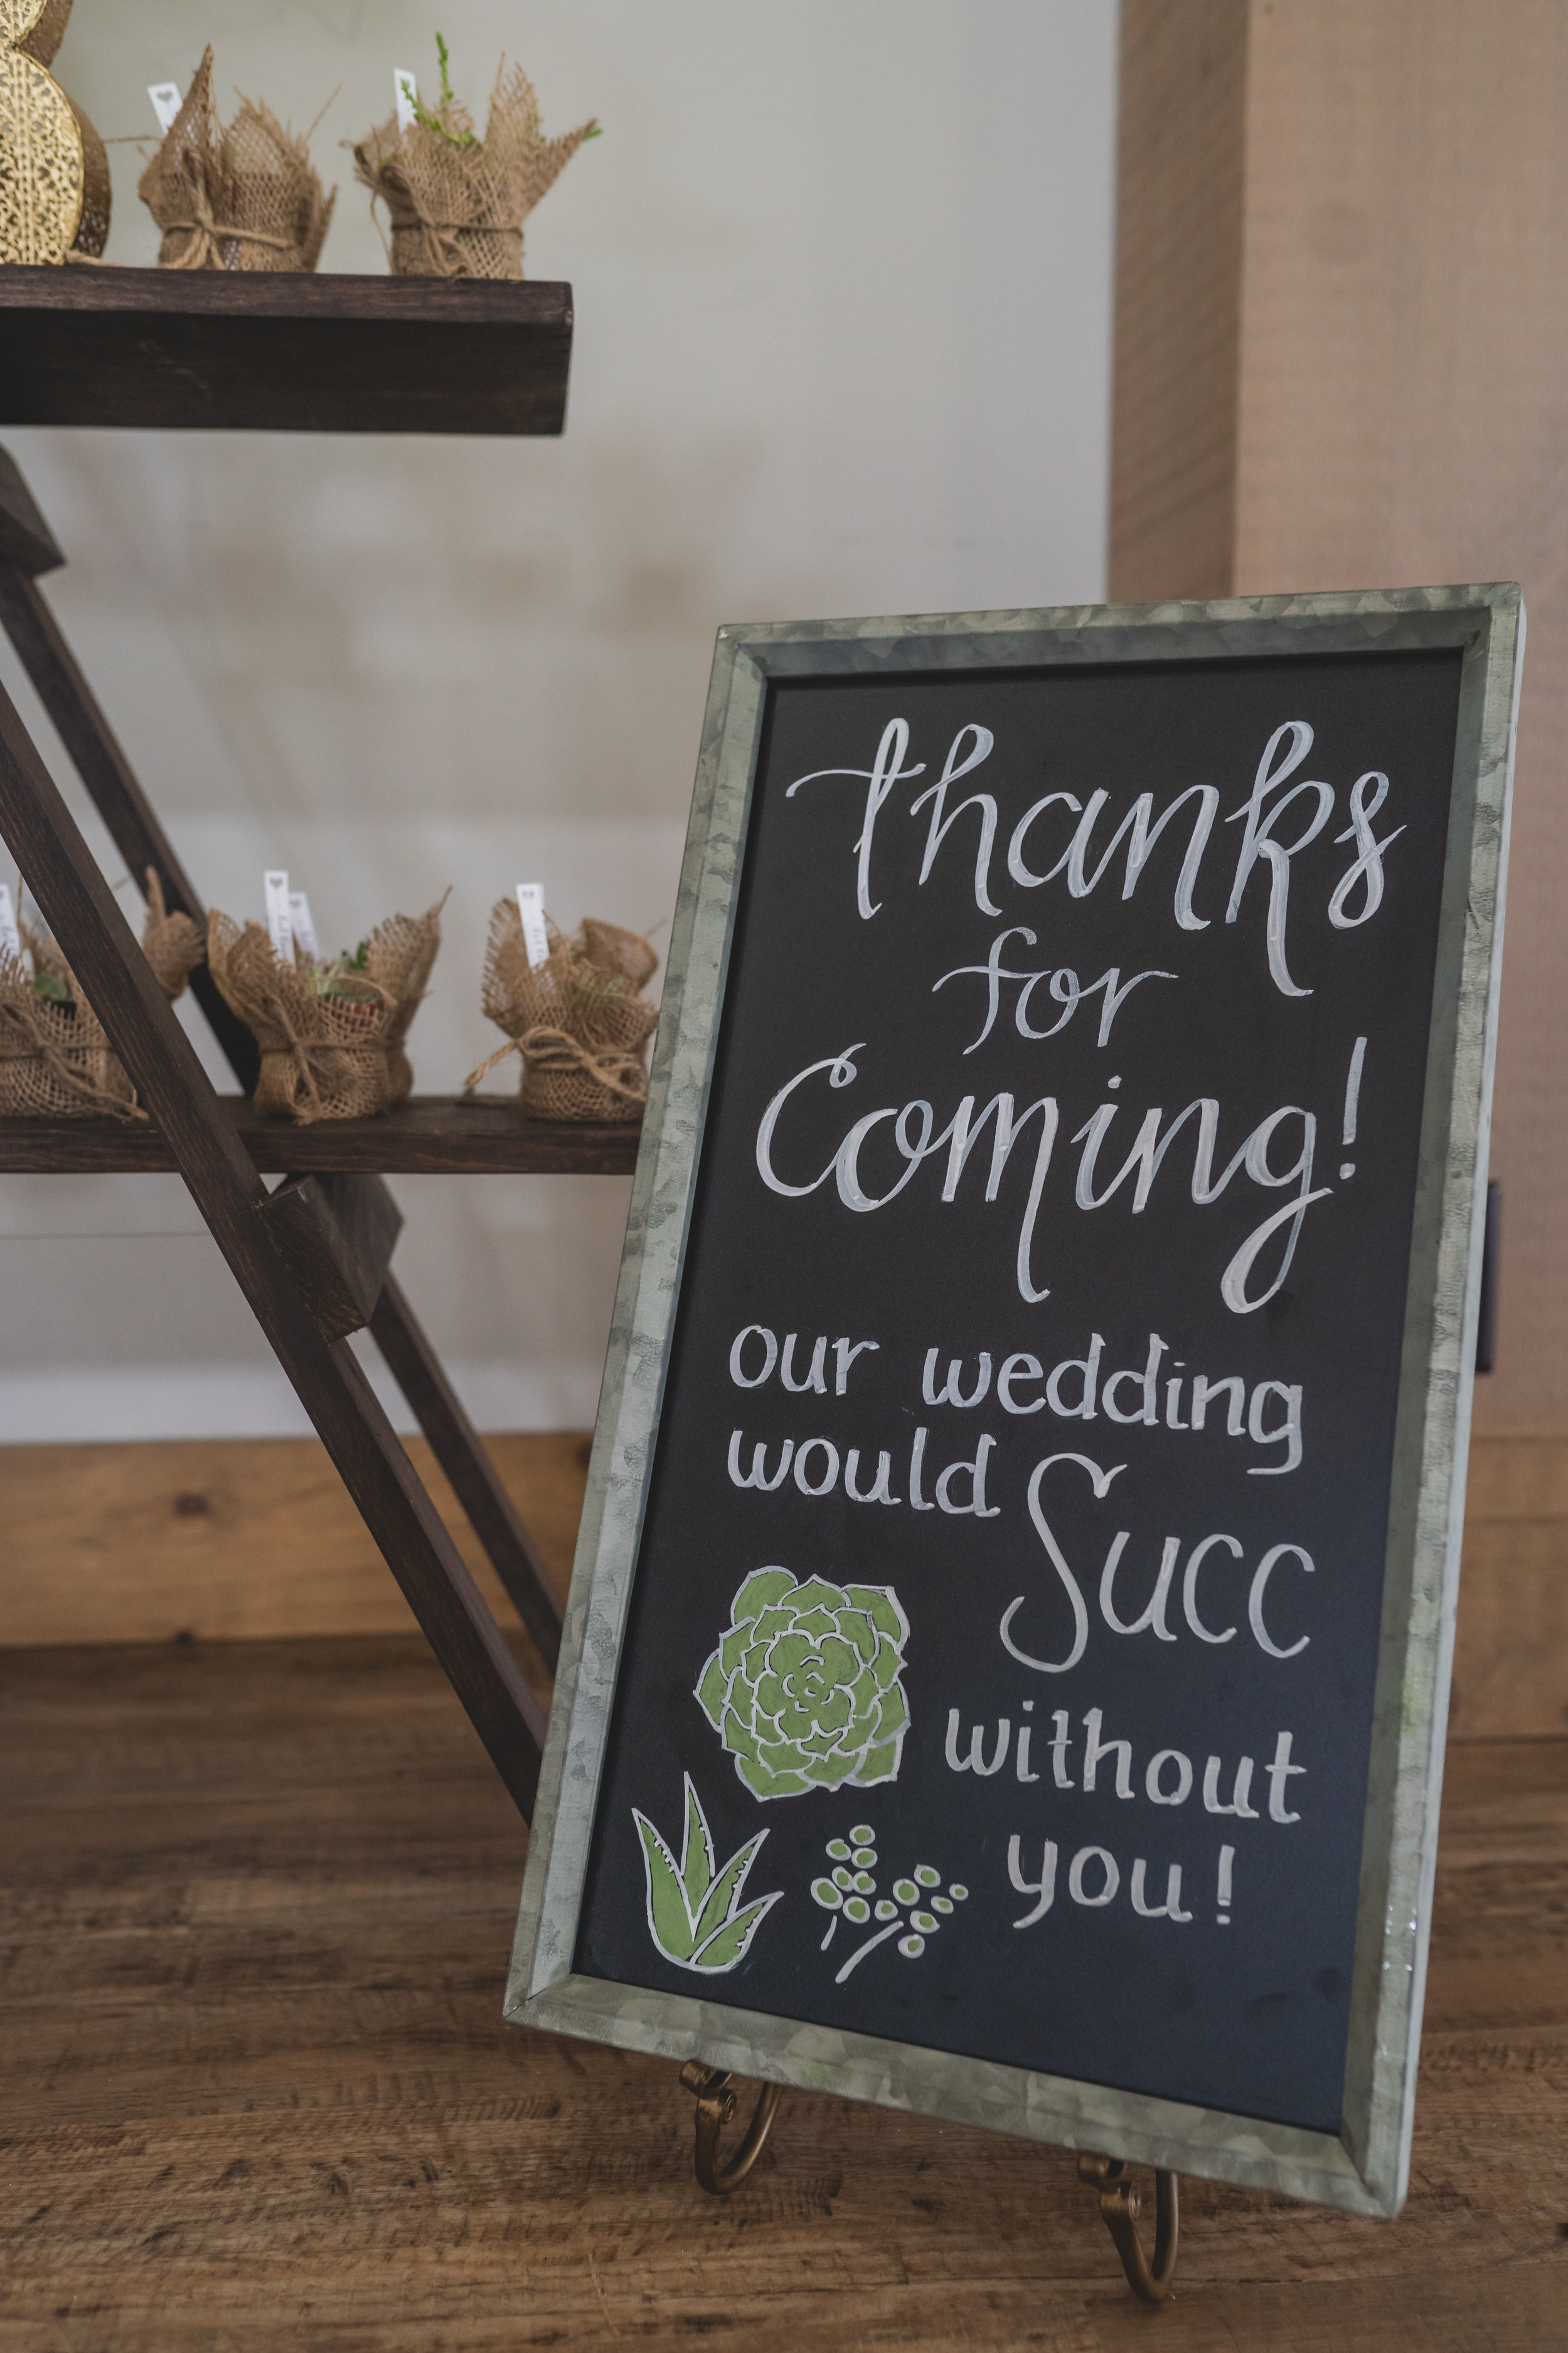 Rustic themed wedding - A table of wedding favors holding succulent plants wrapped in burlap.